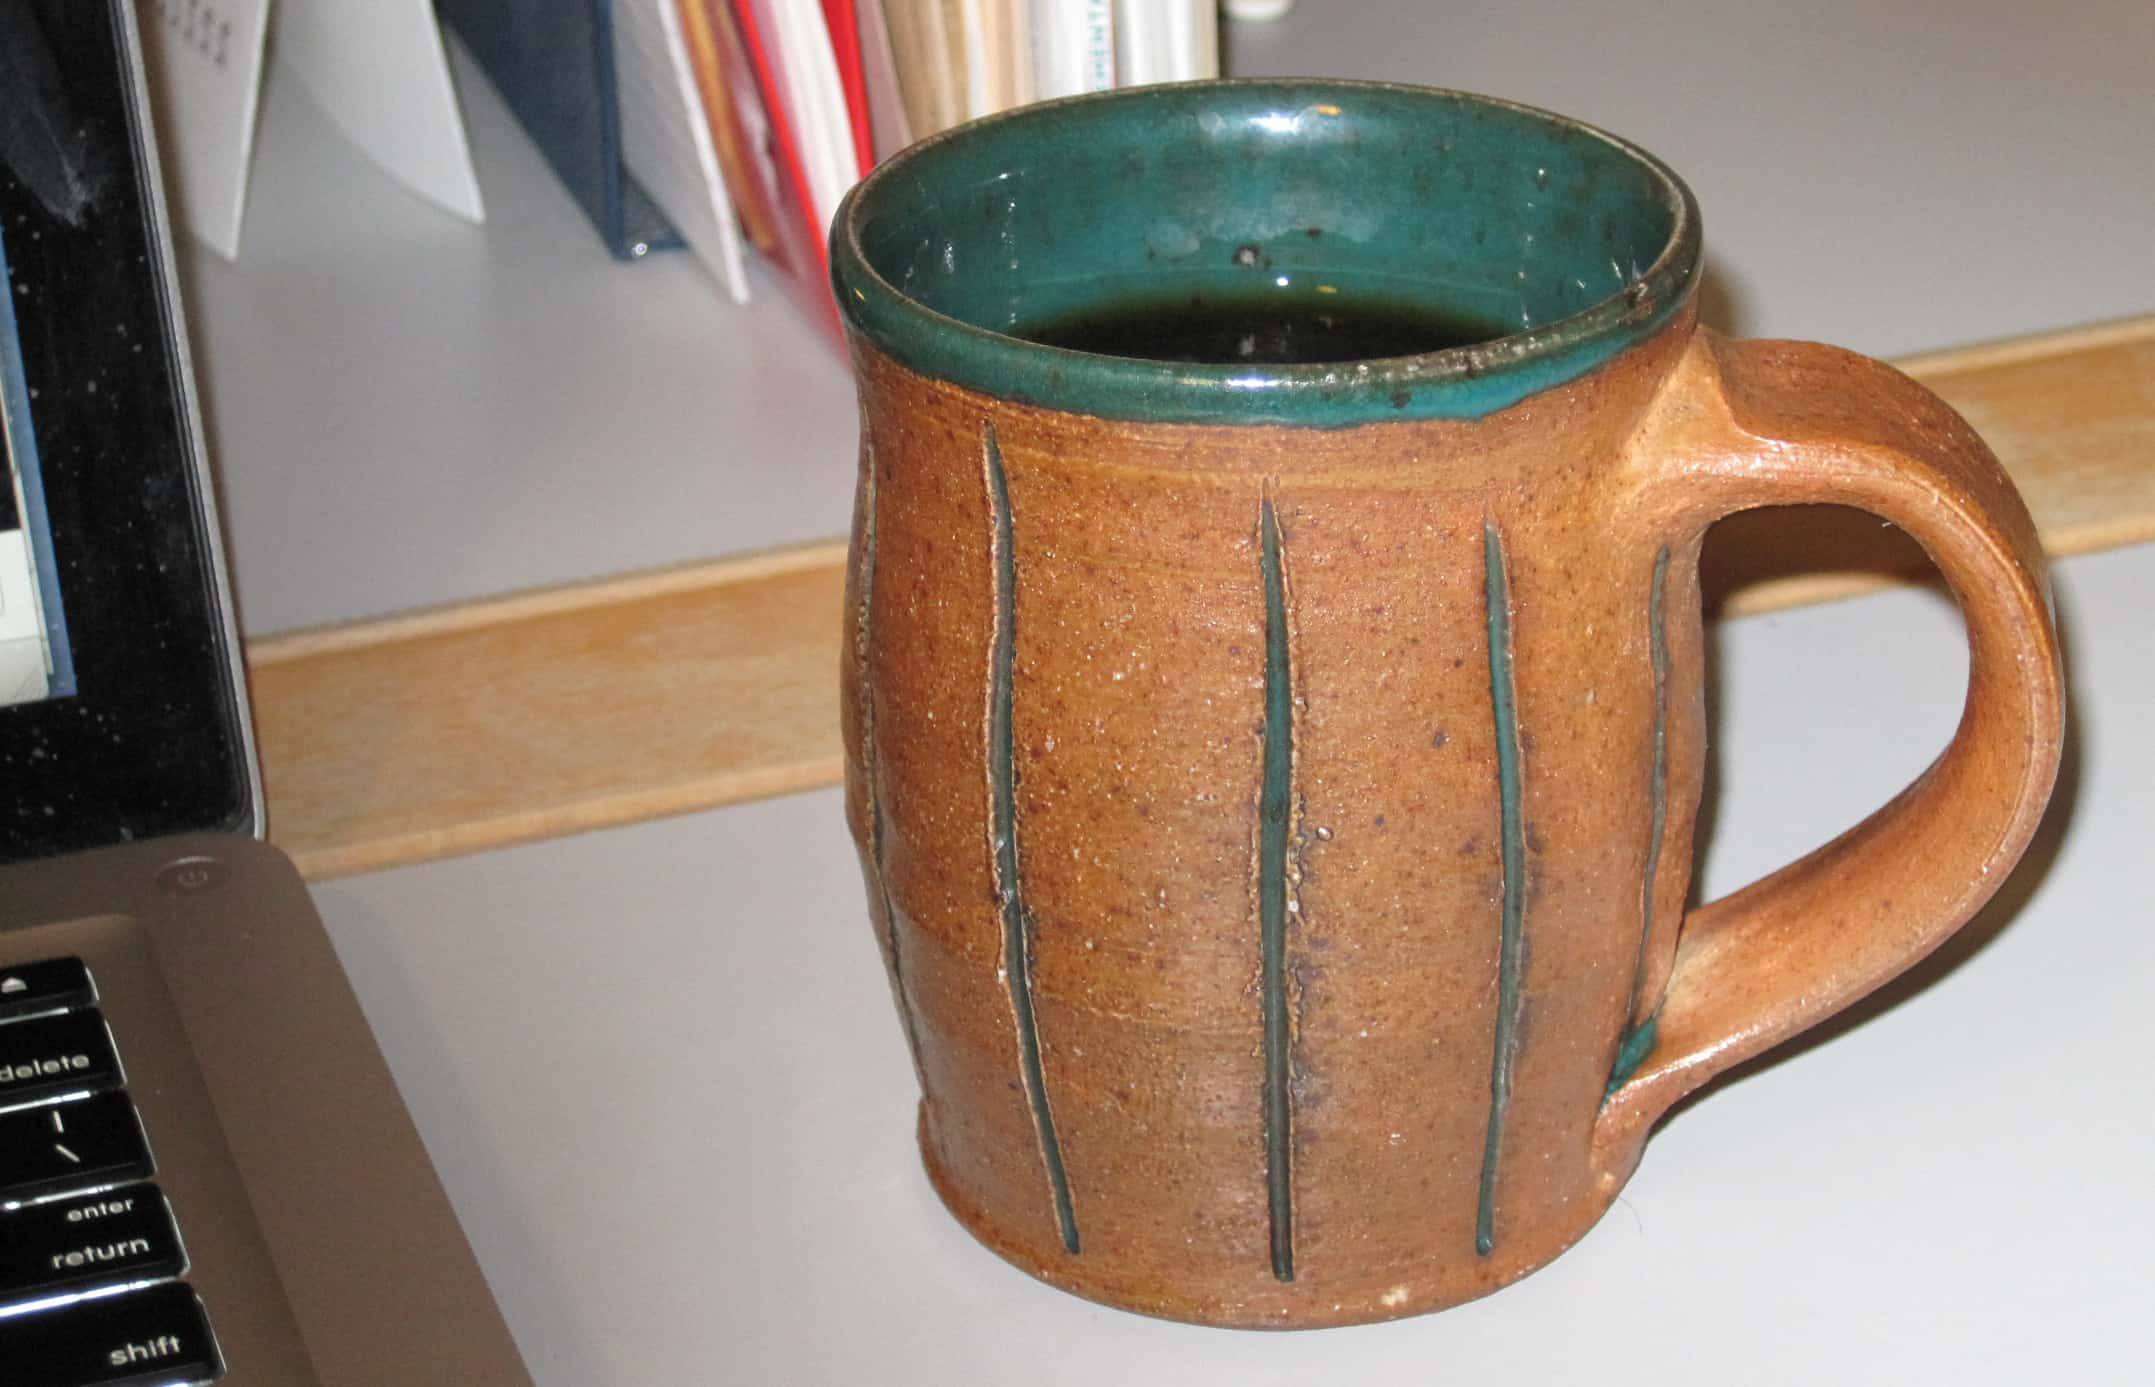 green and brown handmade ceramic mug—mindful consumption